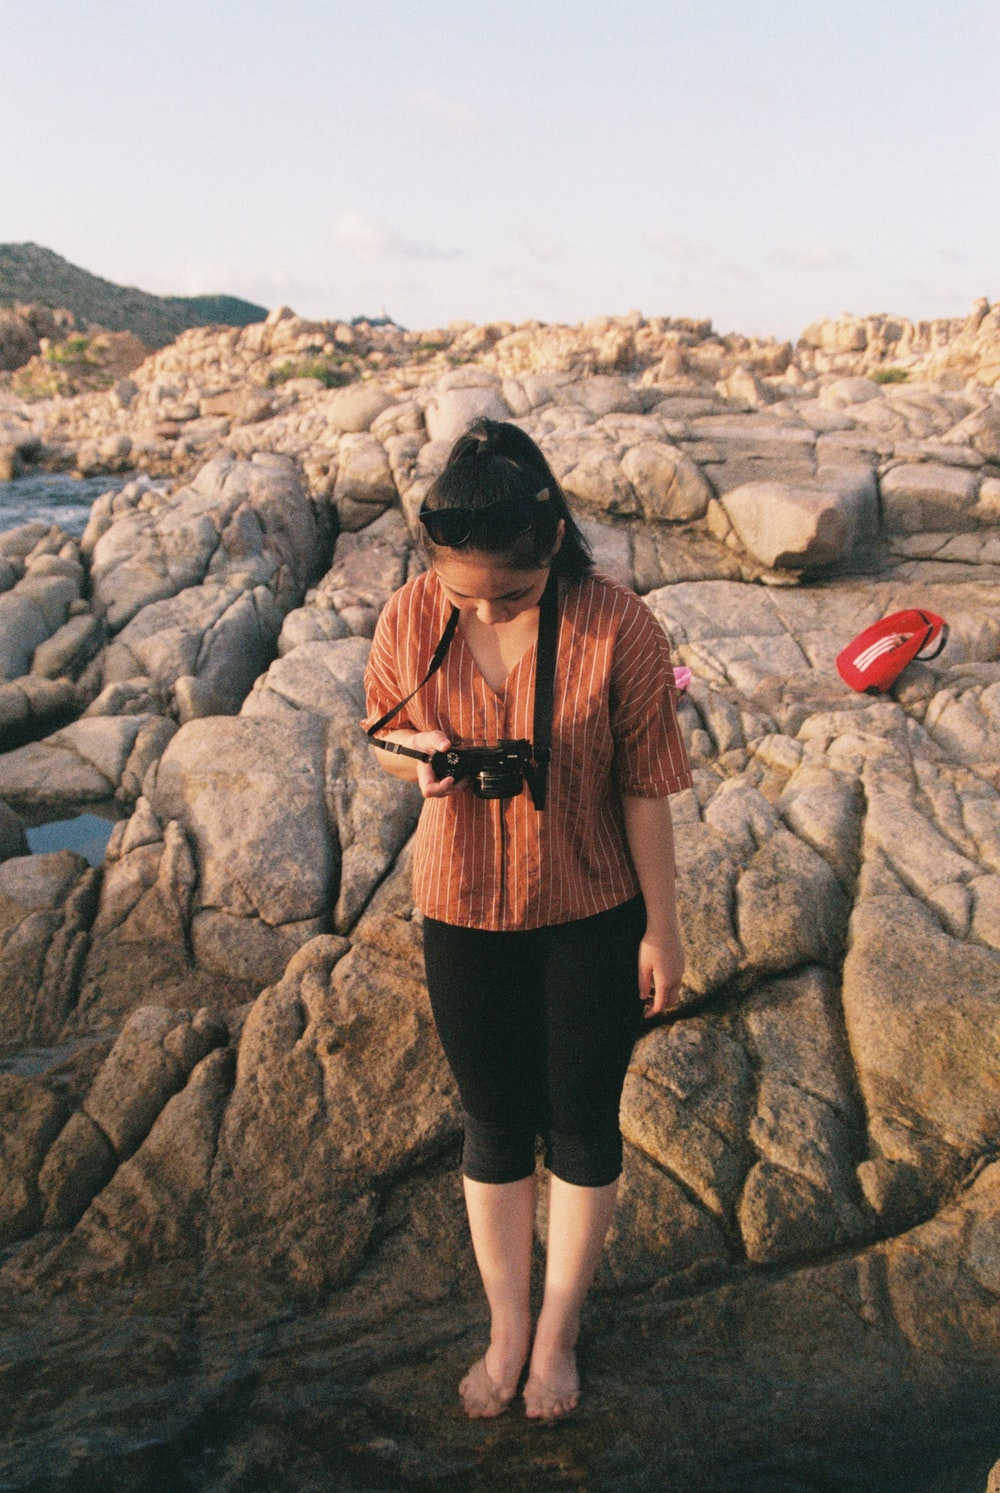 woman in black skirt standing on rocky shore during daytime